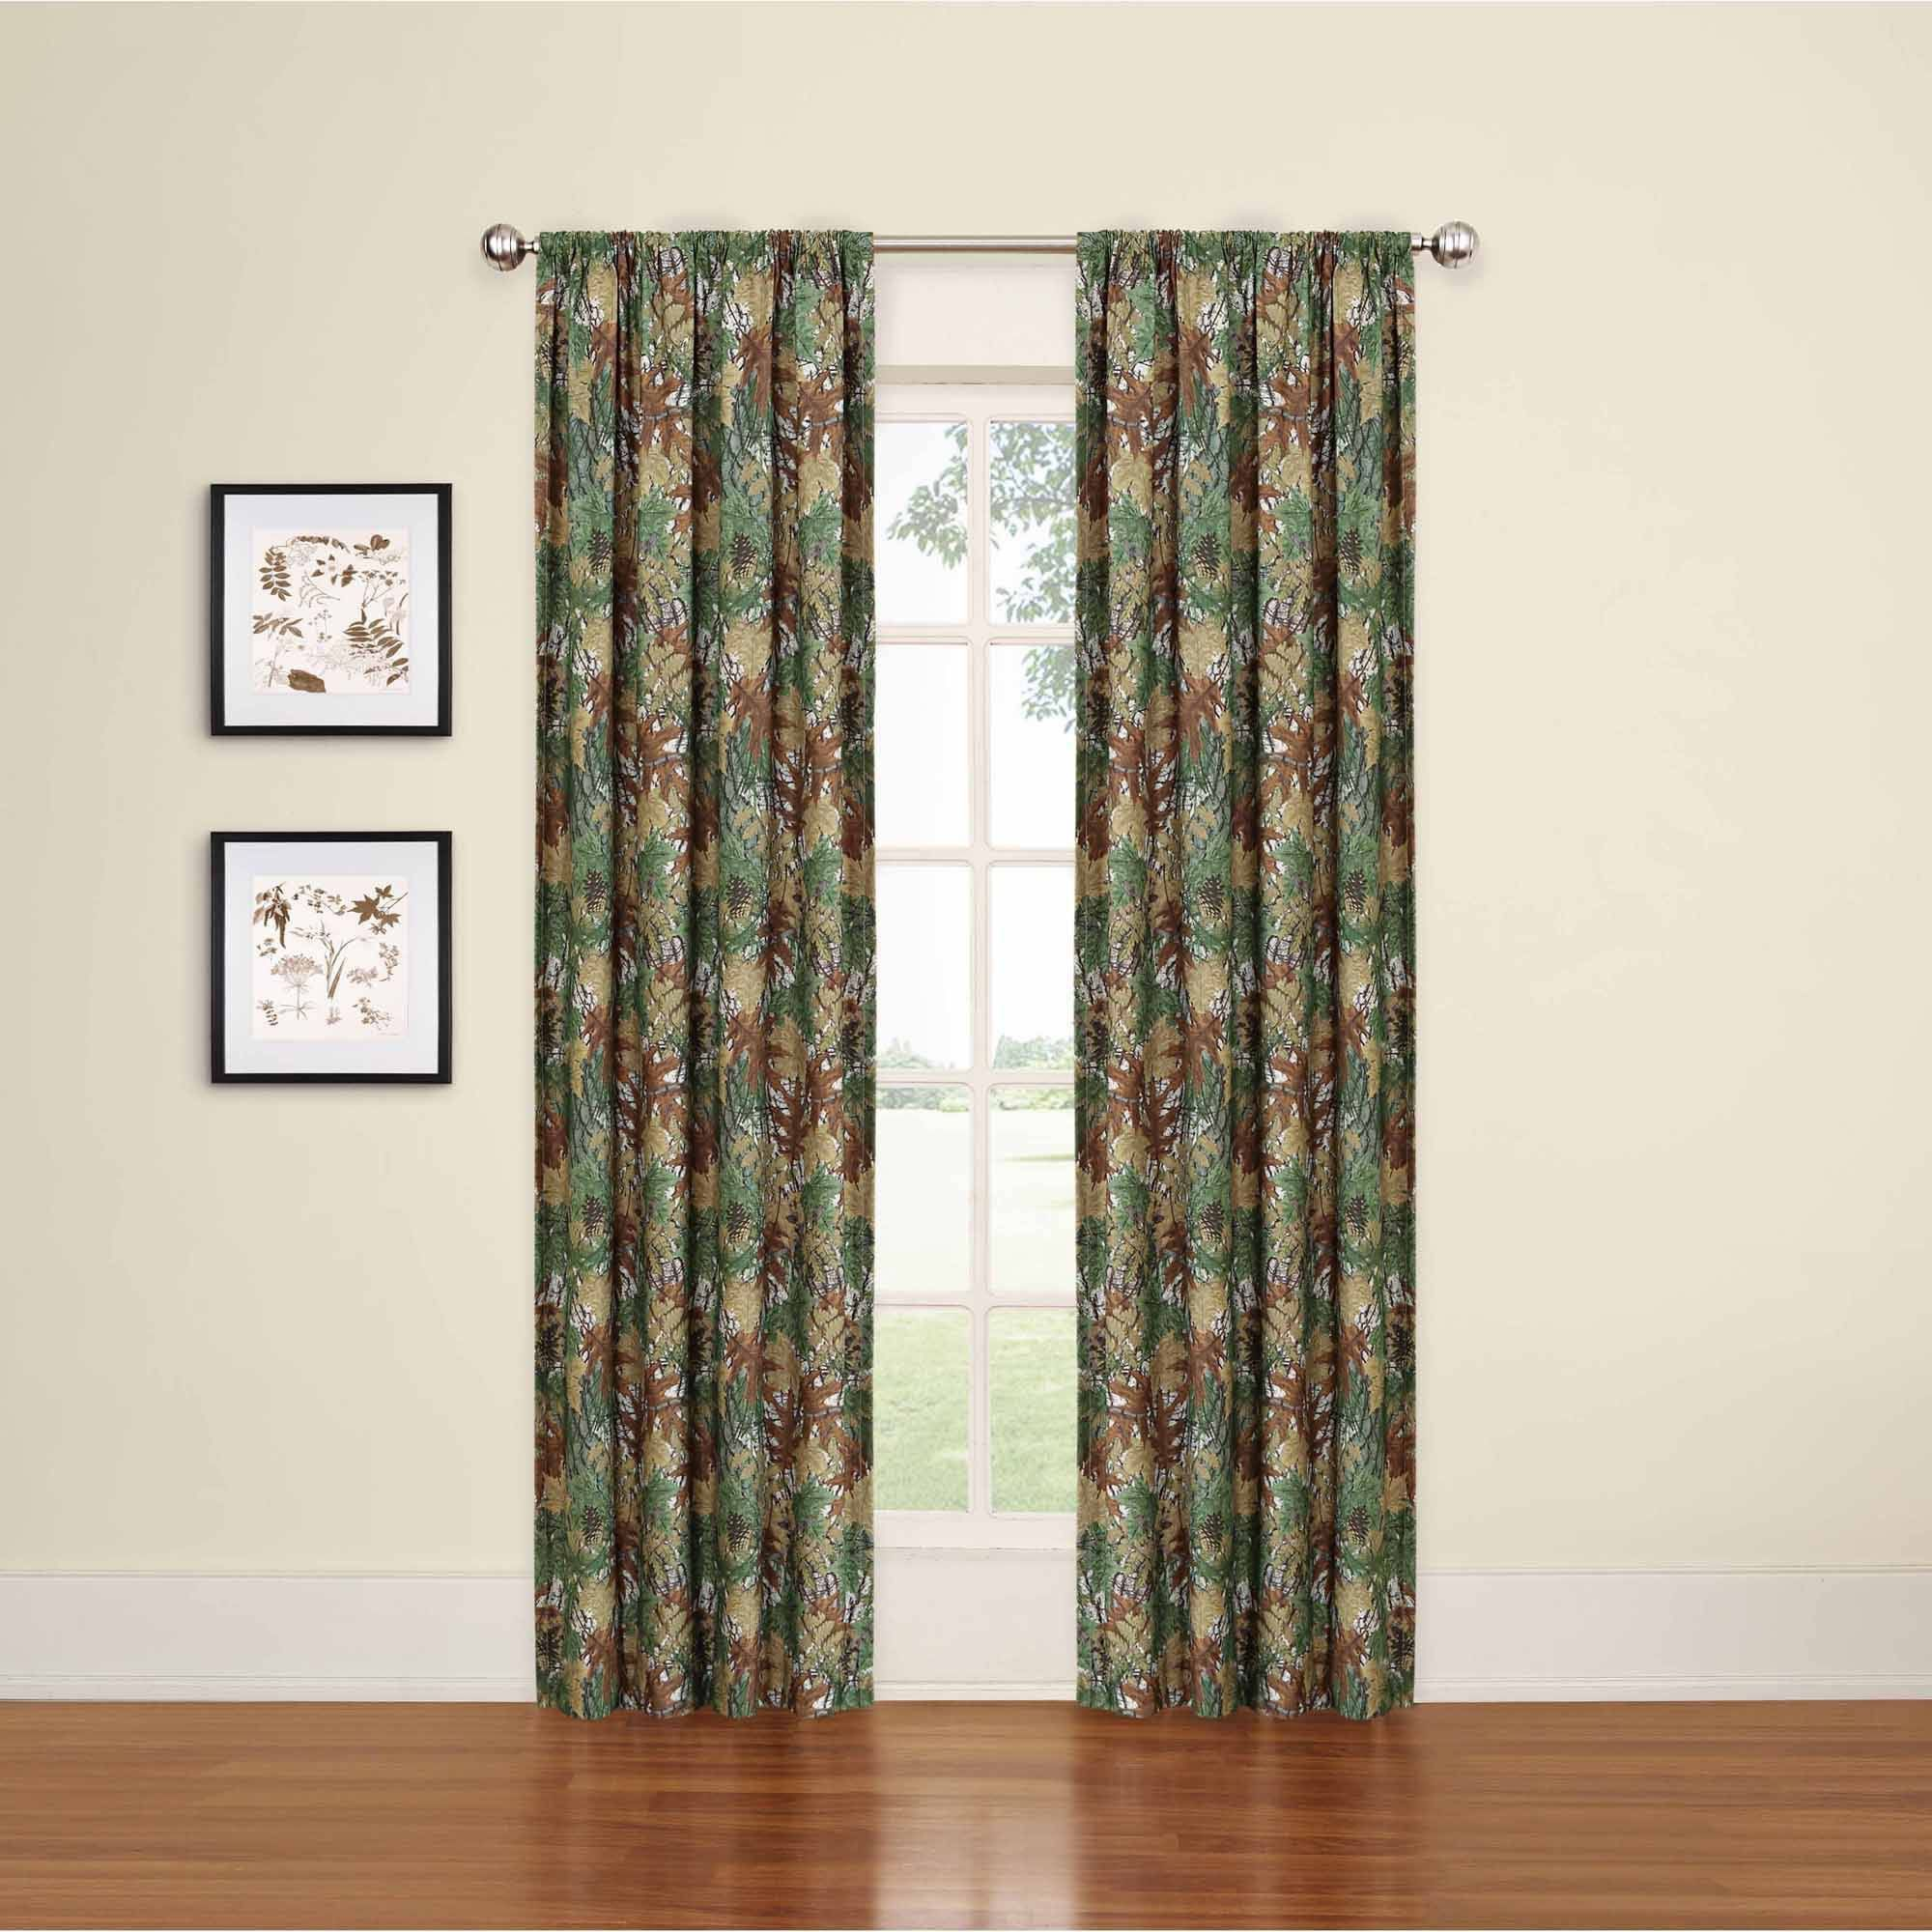 Camo Blackout Curtains In 2020 Room Darkening Curtains Panel Curtains Curtains